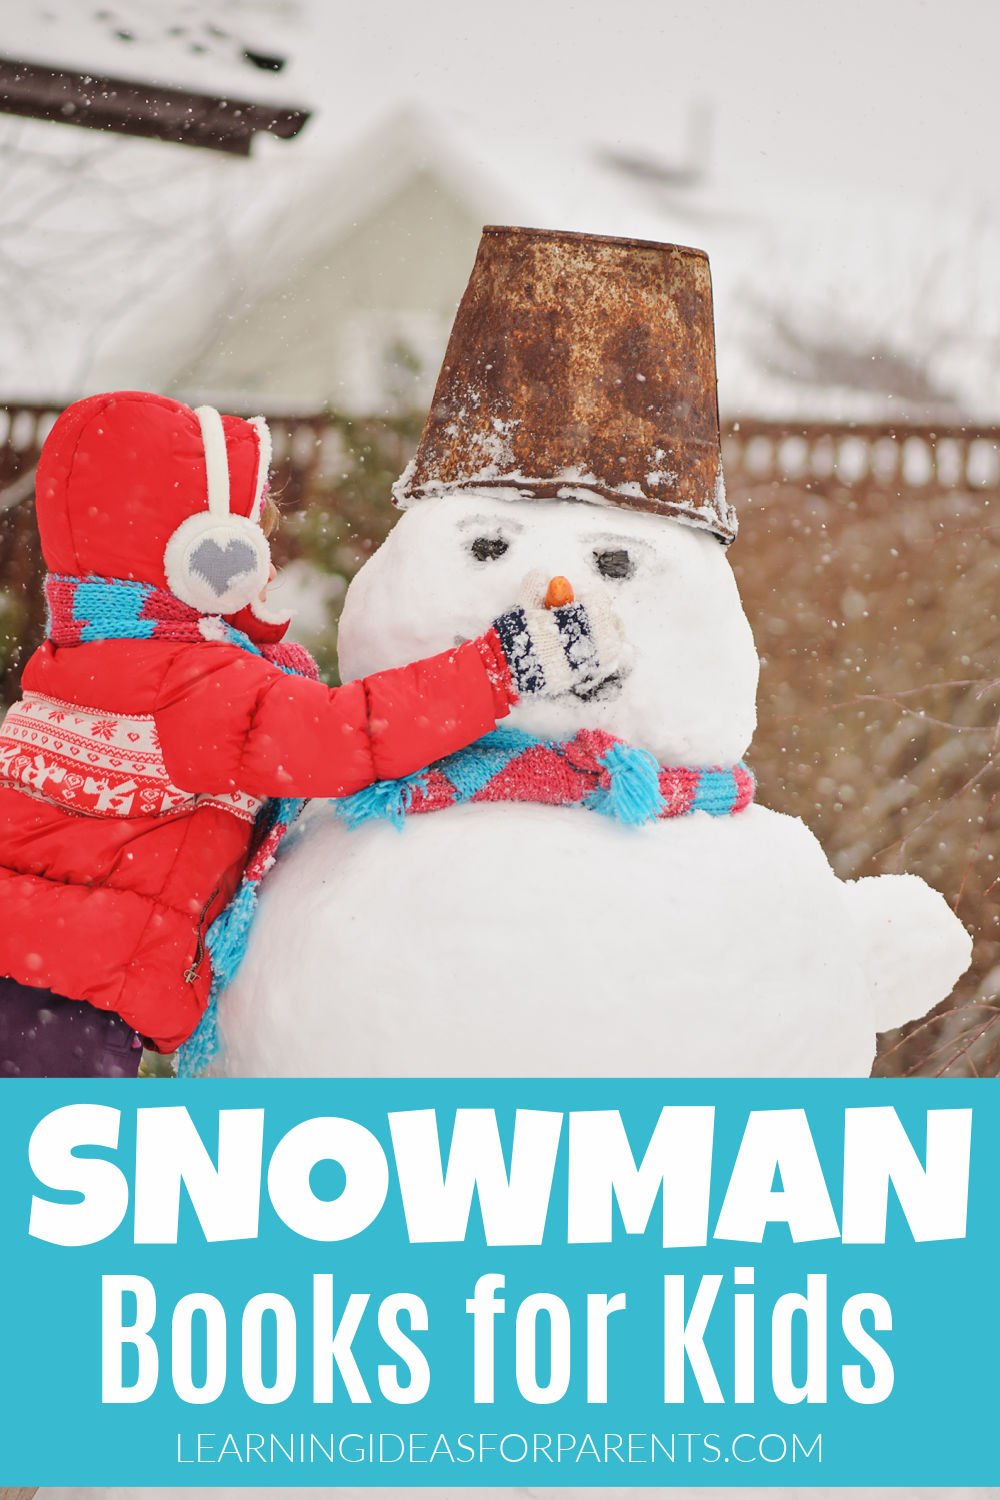 Fun list of snowman books for kids of all ages.